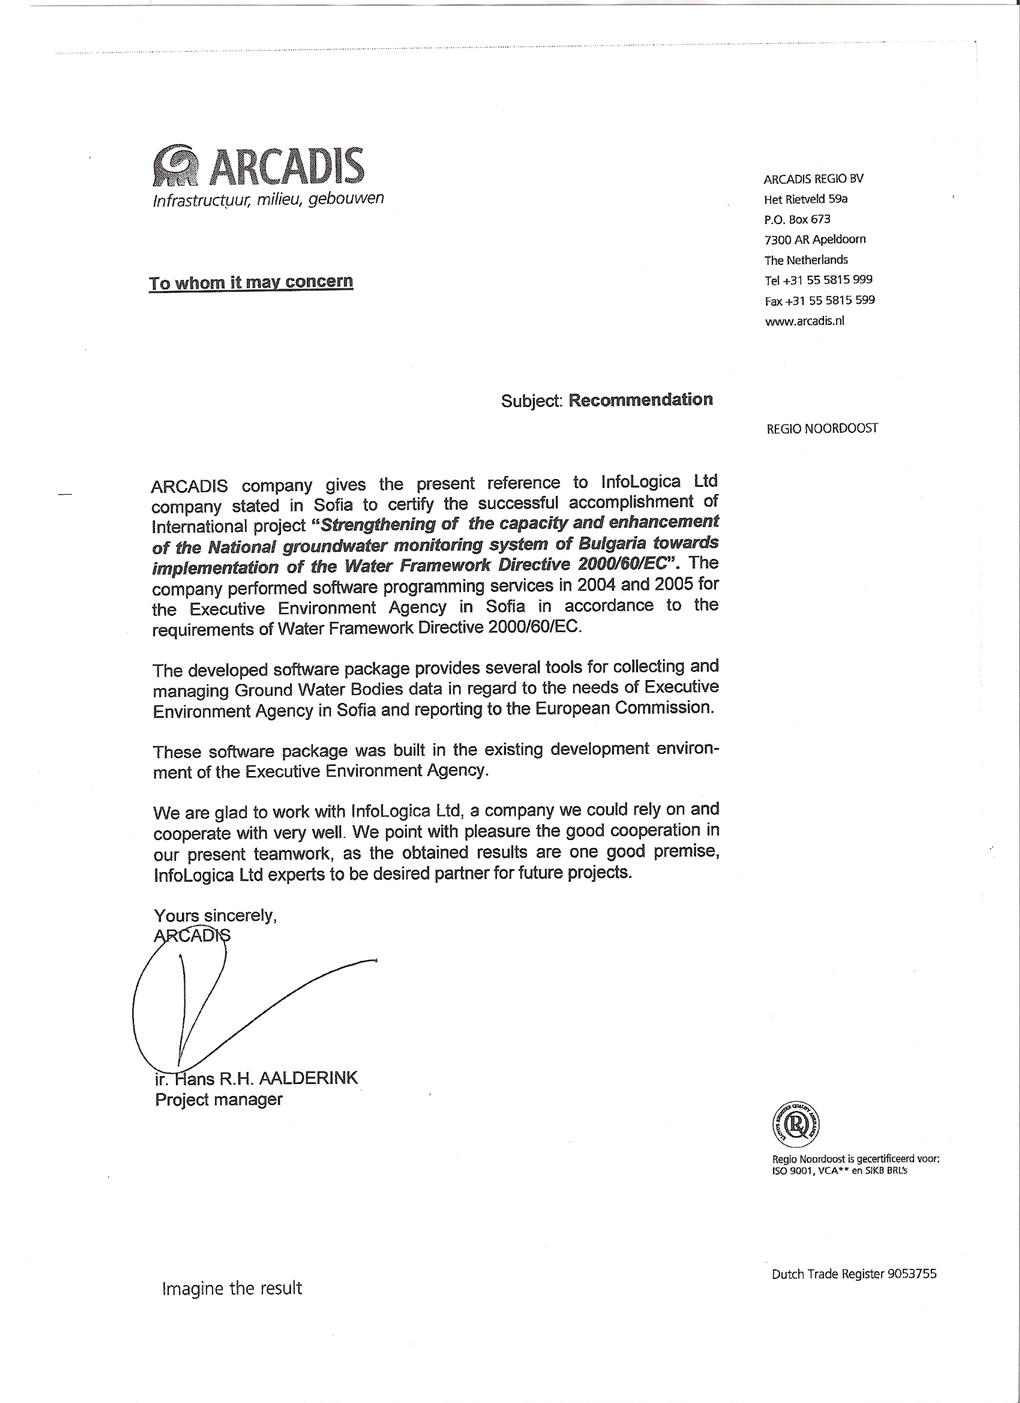 Project manager cover letter recent graduate - sacti good-yuntolovo ru